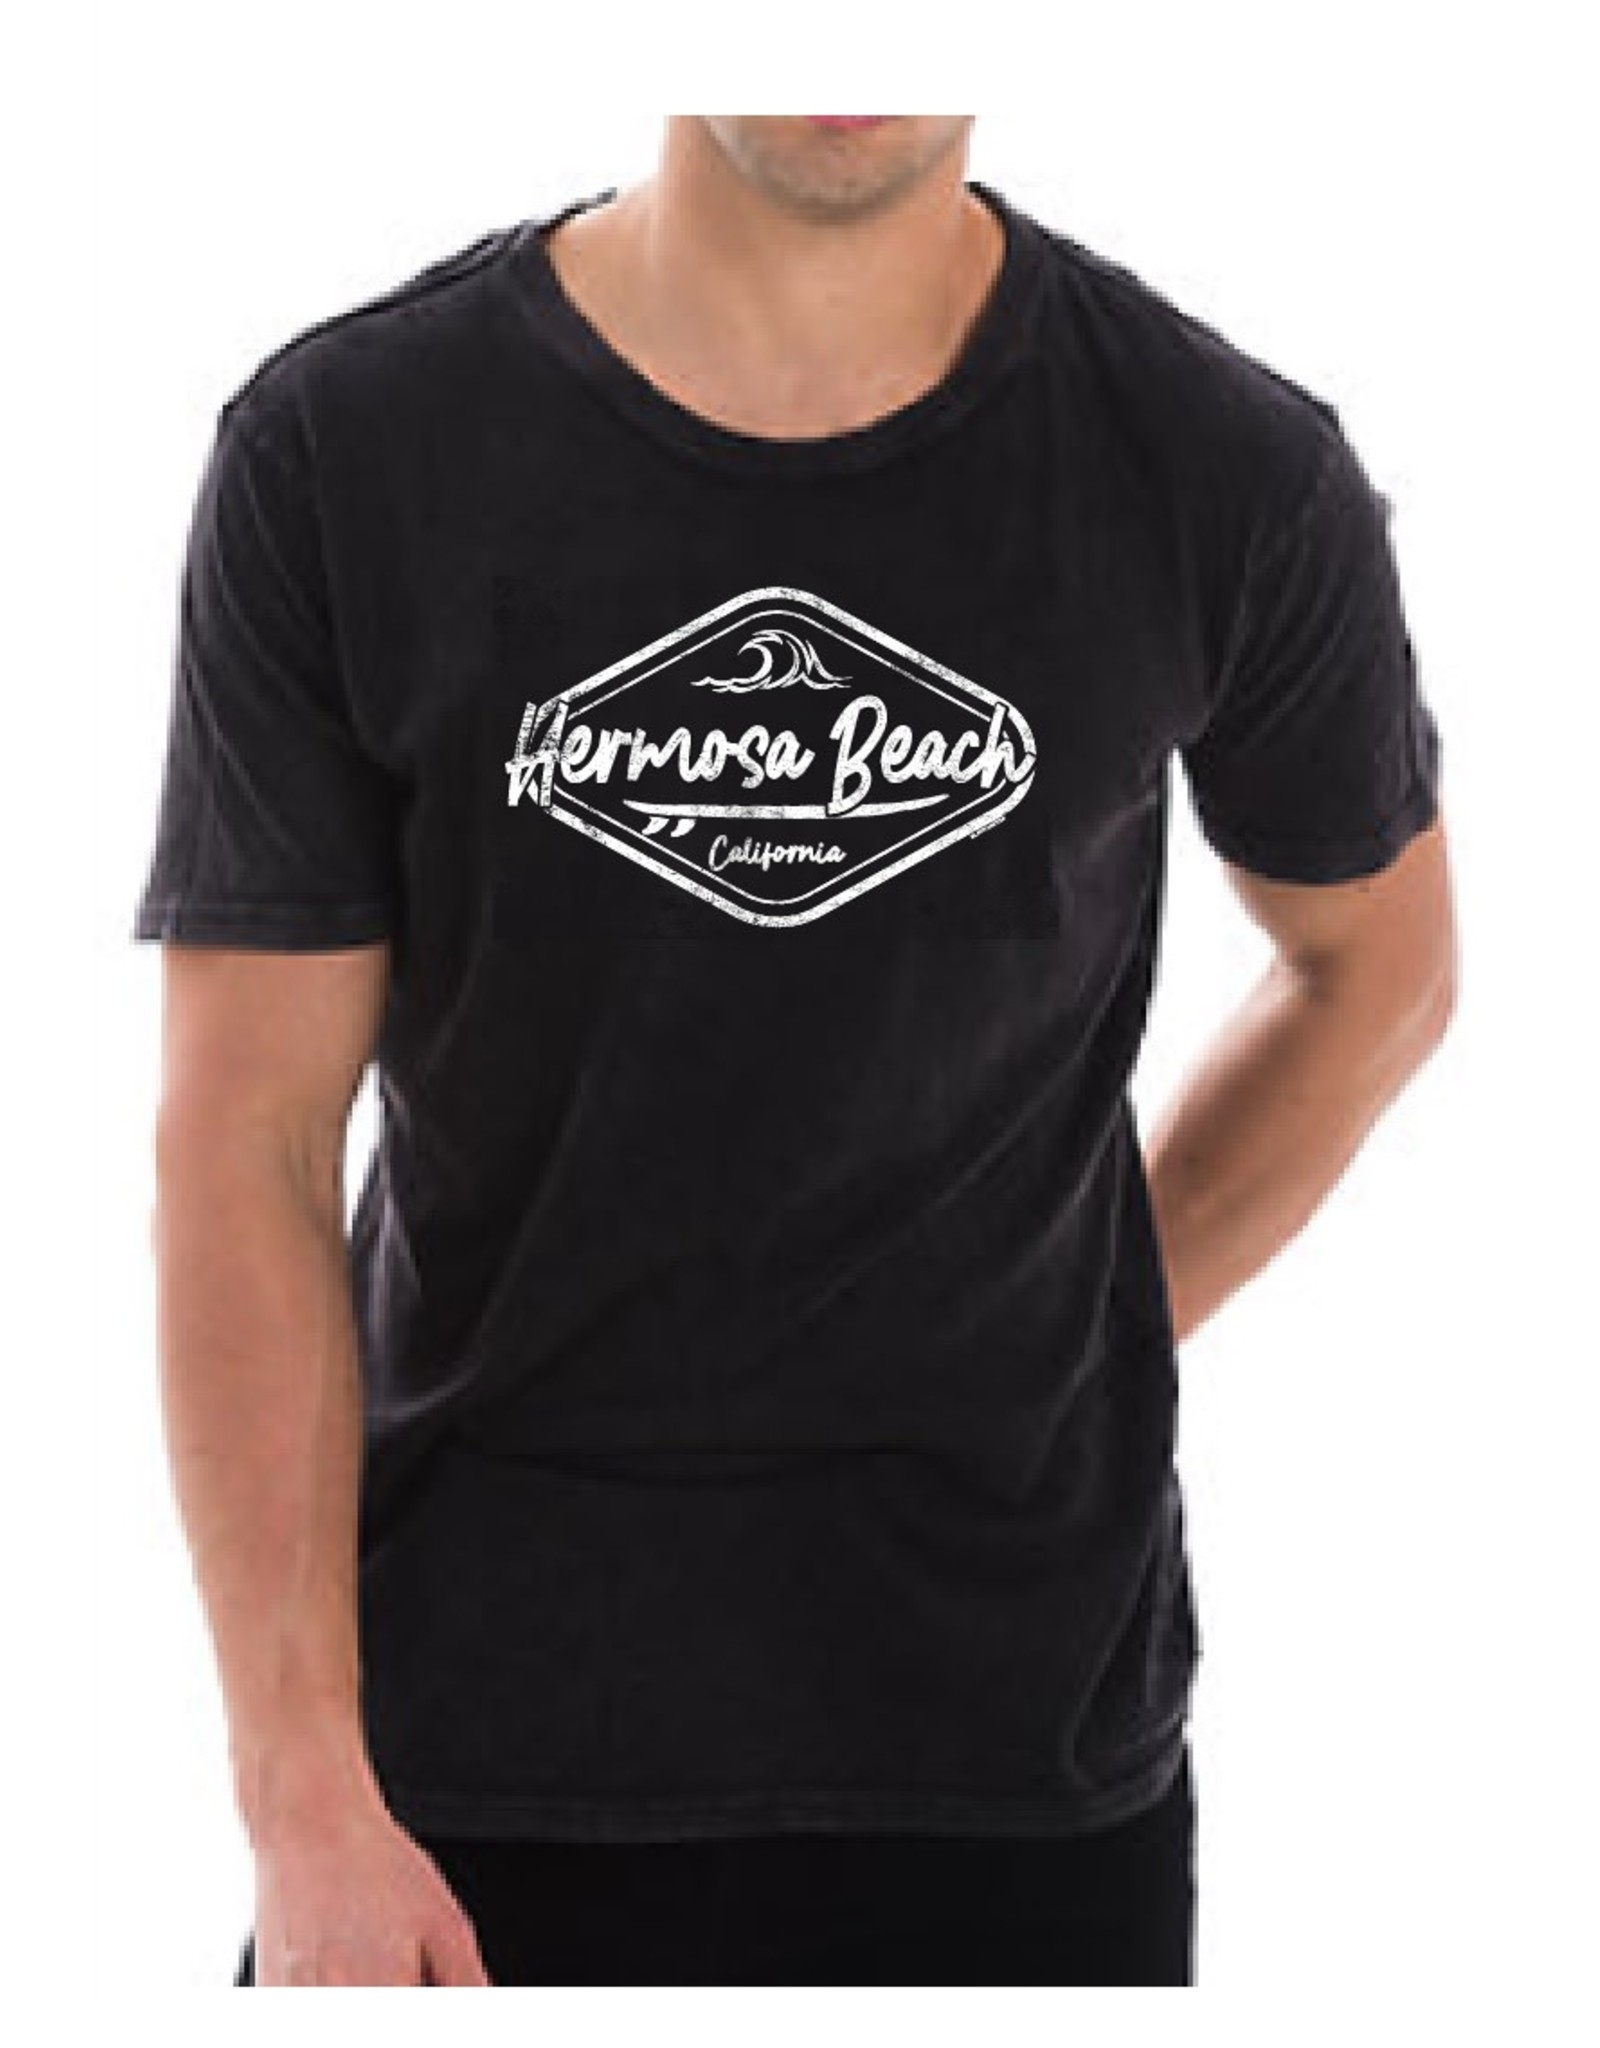 Black Anchor Supply CO. #233 SS ANOTHER DIAMOND HB